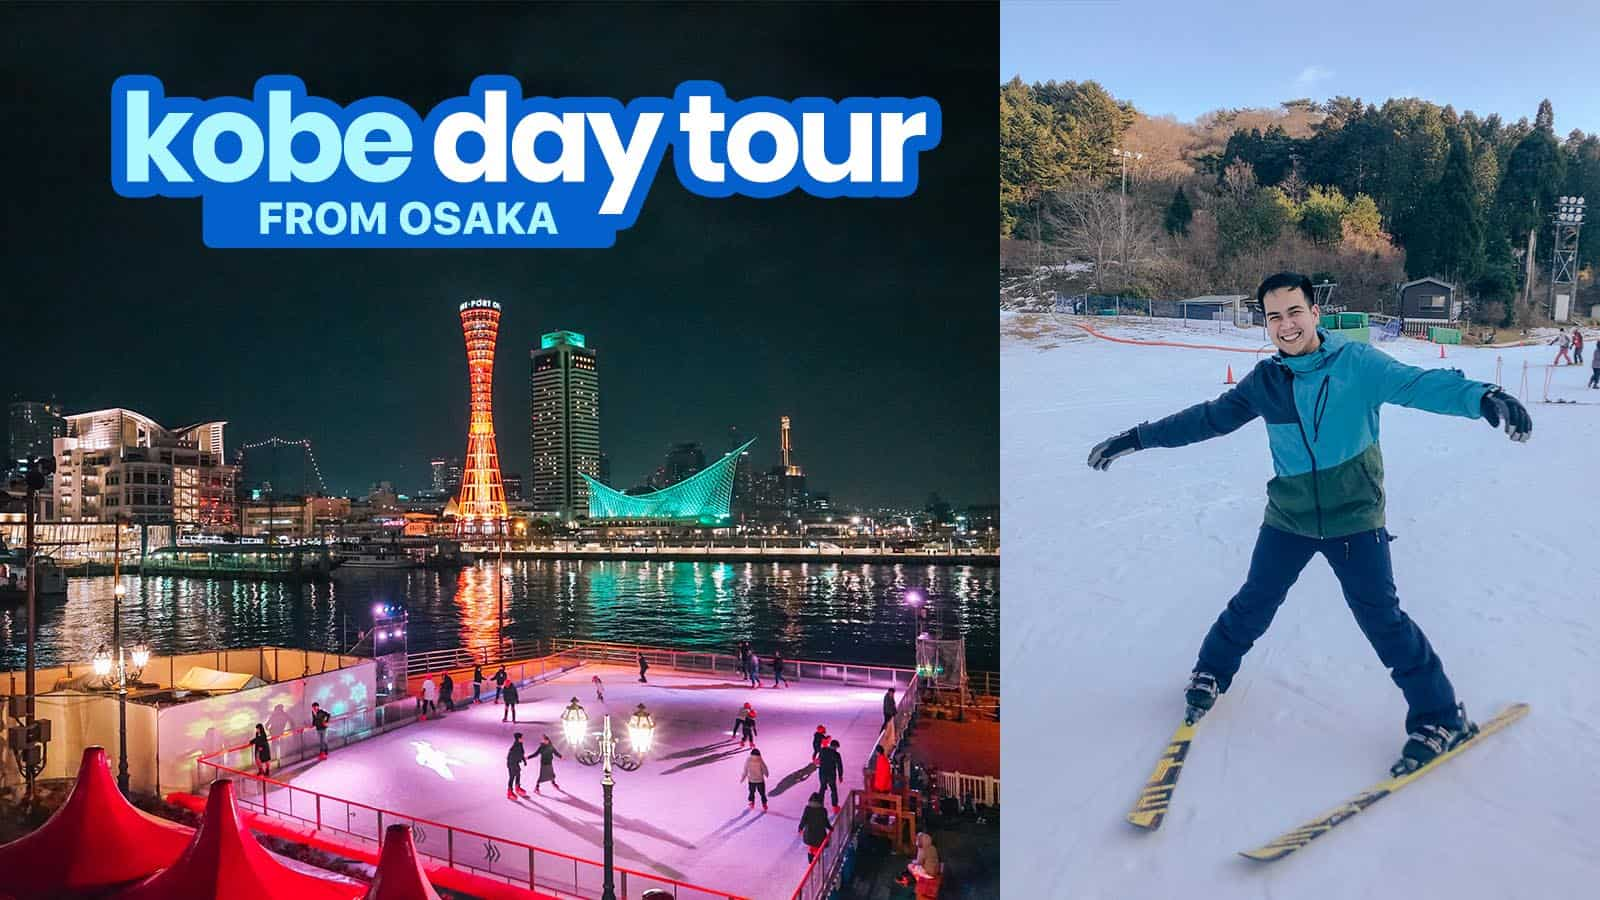 KOBE DAY TOUR FROM OSAKA: A DIY Itinerary | The Poor